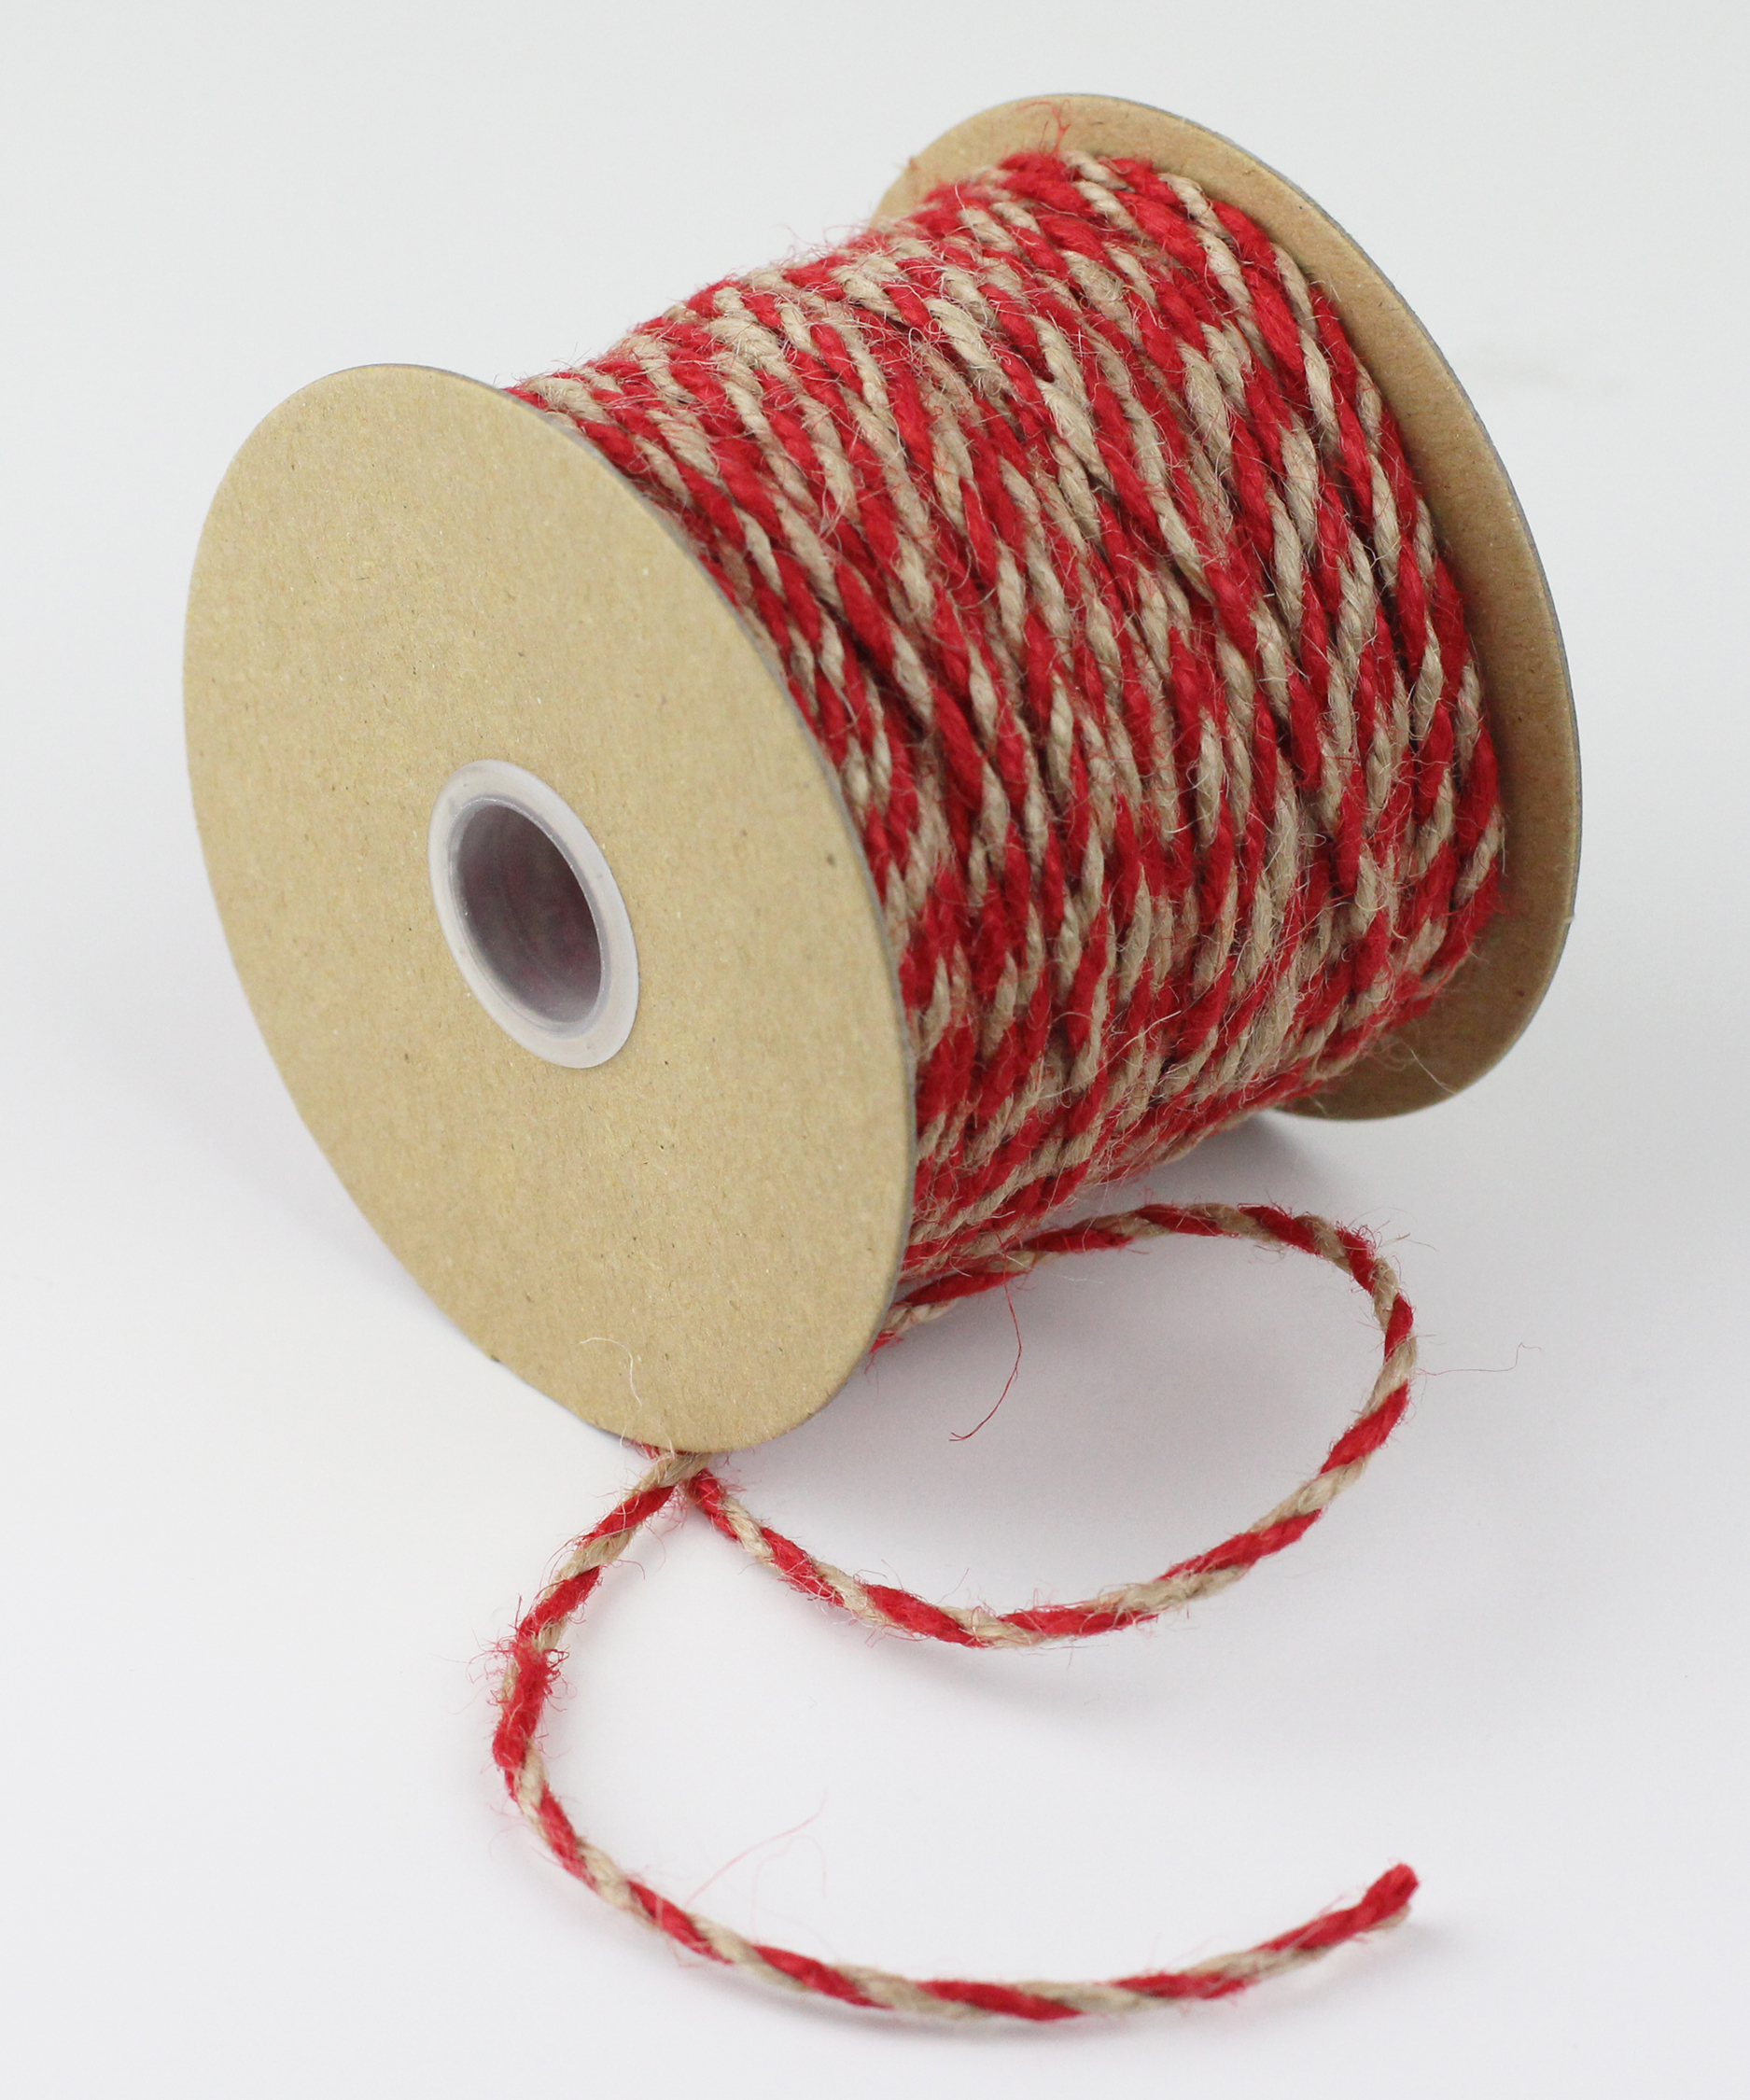 2.5 mm Red/Natural Jute Twine - 50 Yards